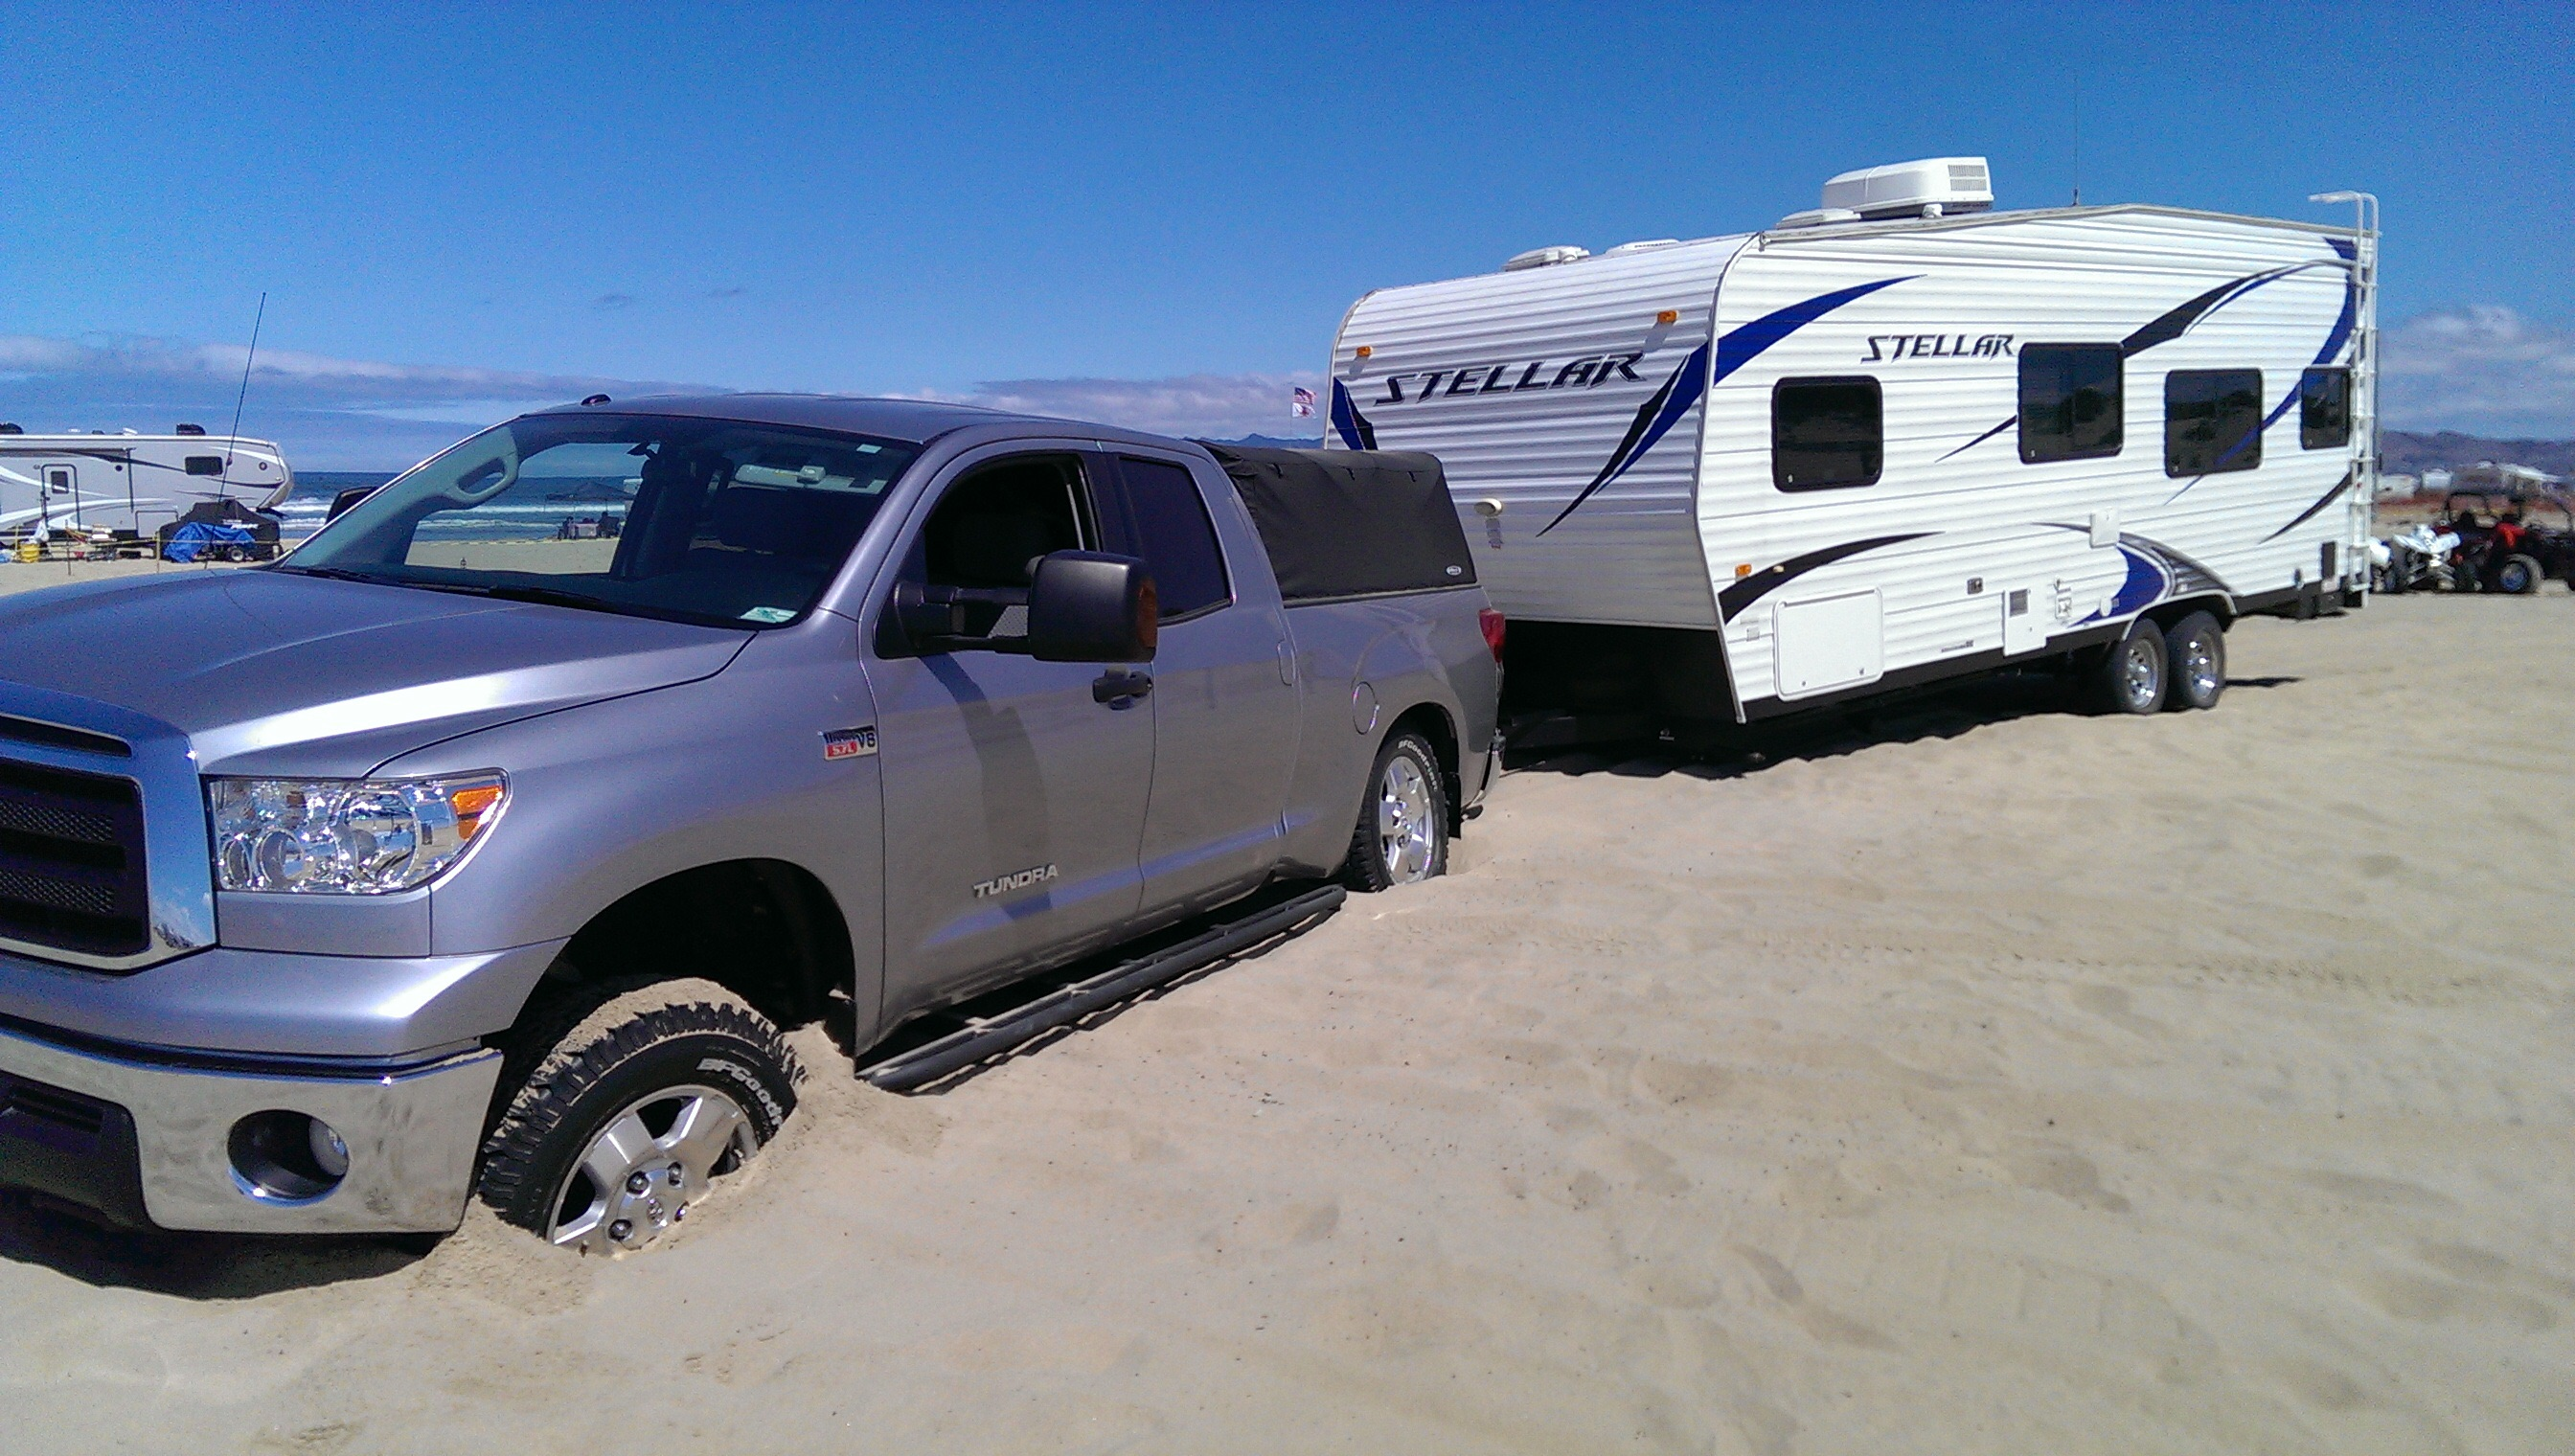 Oceano Dunes Pismo Beach Camping The Best Beaches In World